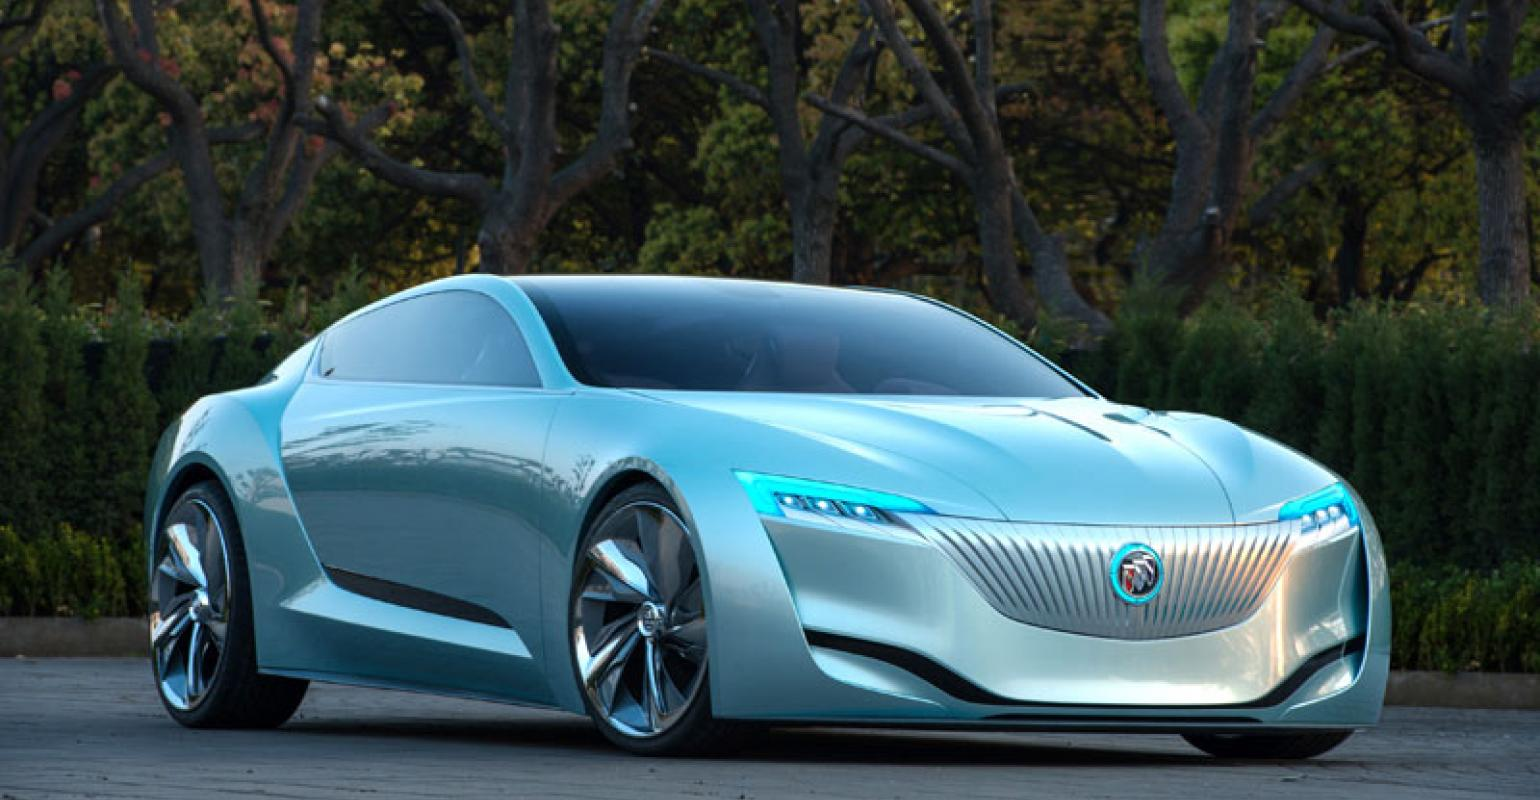 GM to Introduce Buick Riviera Global Concept at Shanghai Auto Show